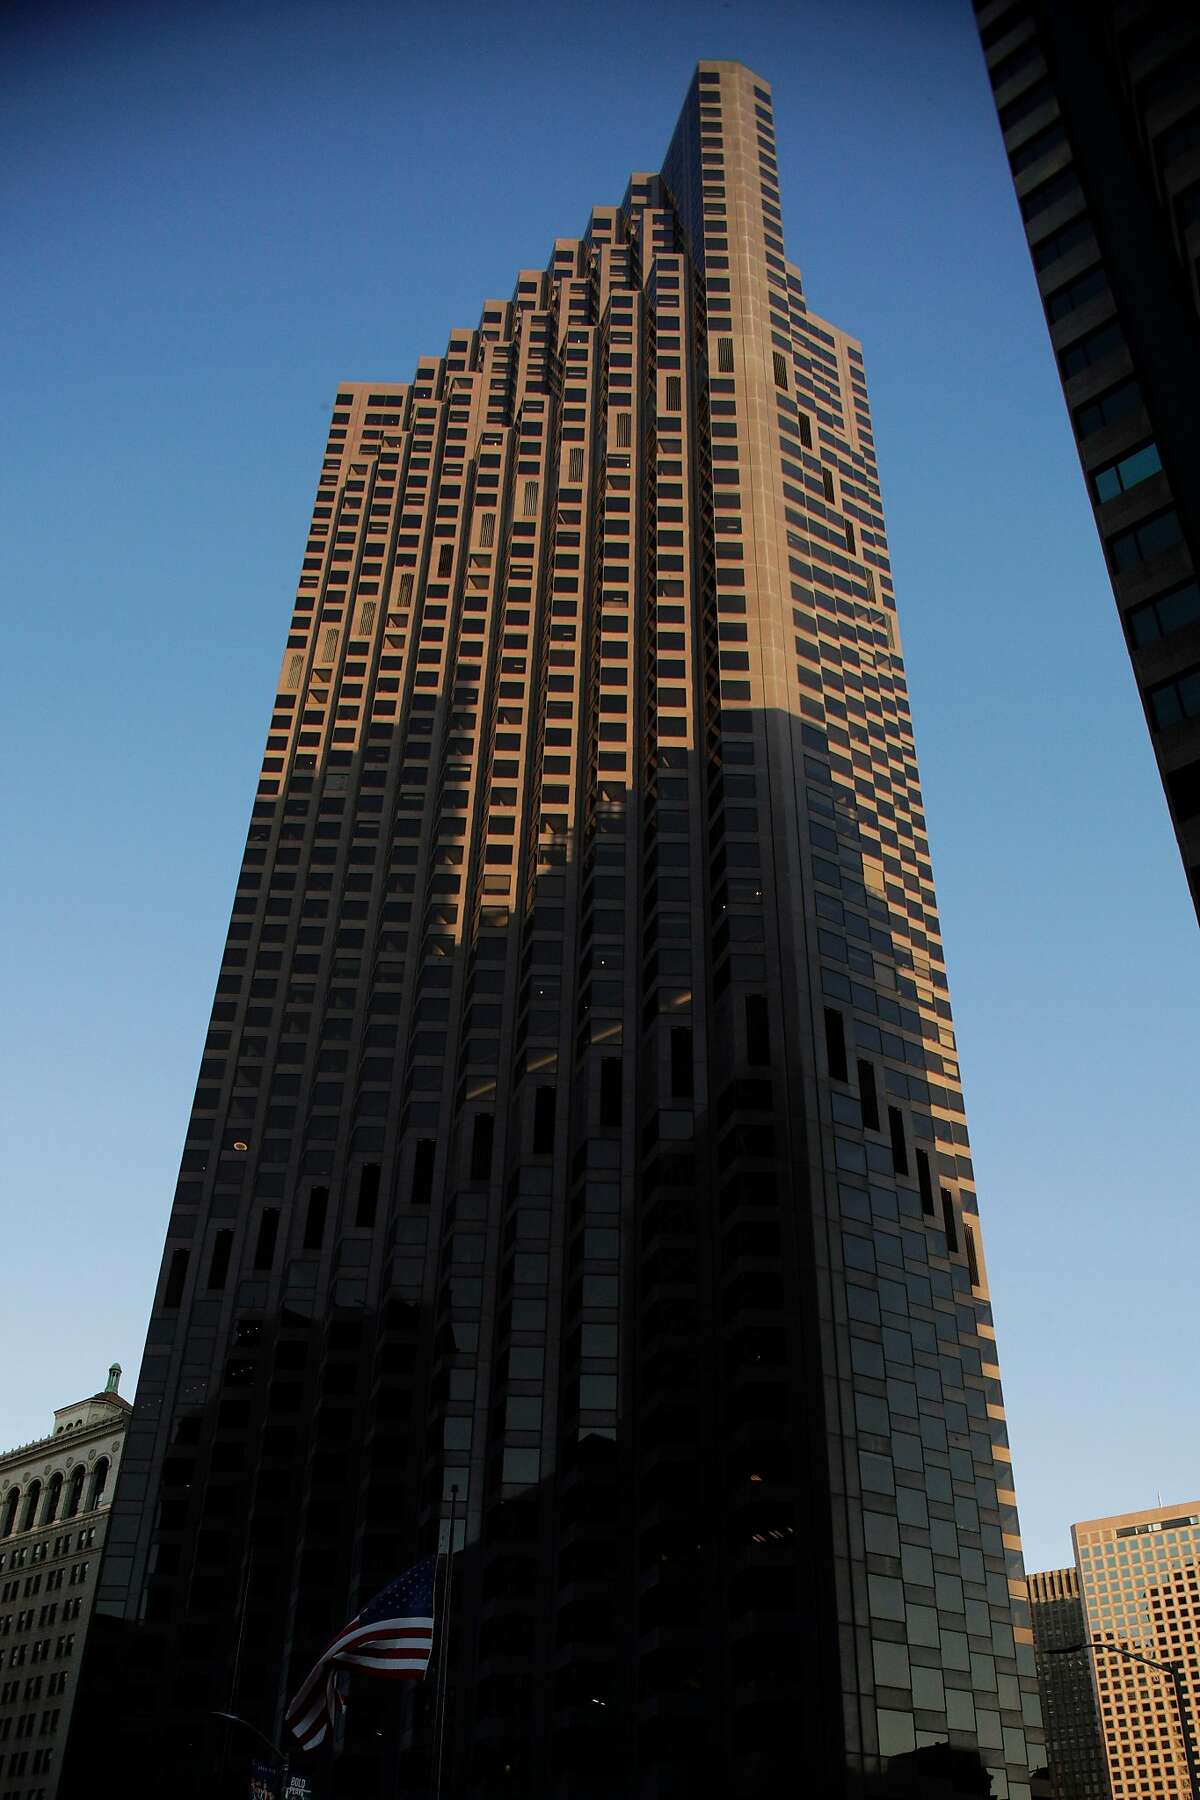 The exterior of 555 California Street in San Francisco, Calif., on Wednesday, May 6, 2020. Co-working giant Regus has walked away from a 15-year lease worth $90 million at 345 Montgomery St., the former bank of America banking hall co-owned by Vornado and the Trump Organization which also owns 555 California Street.